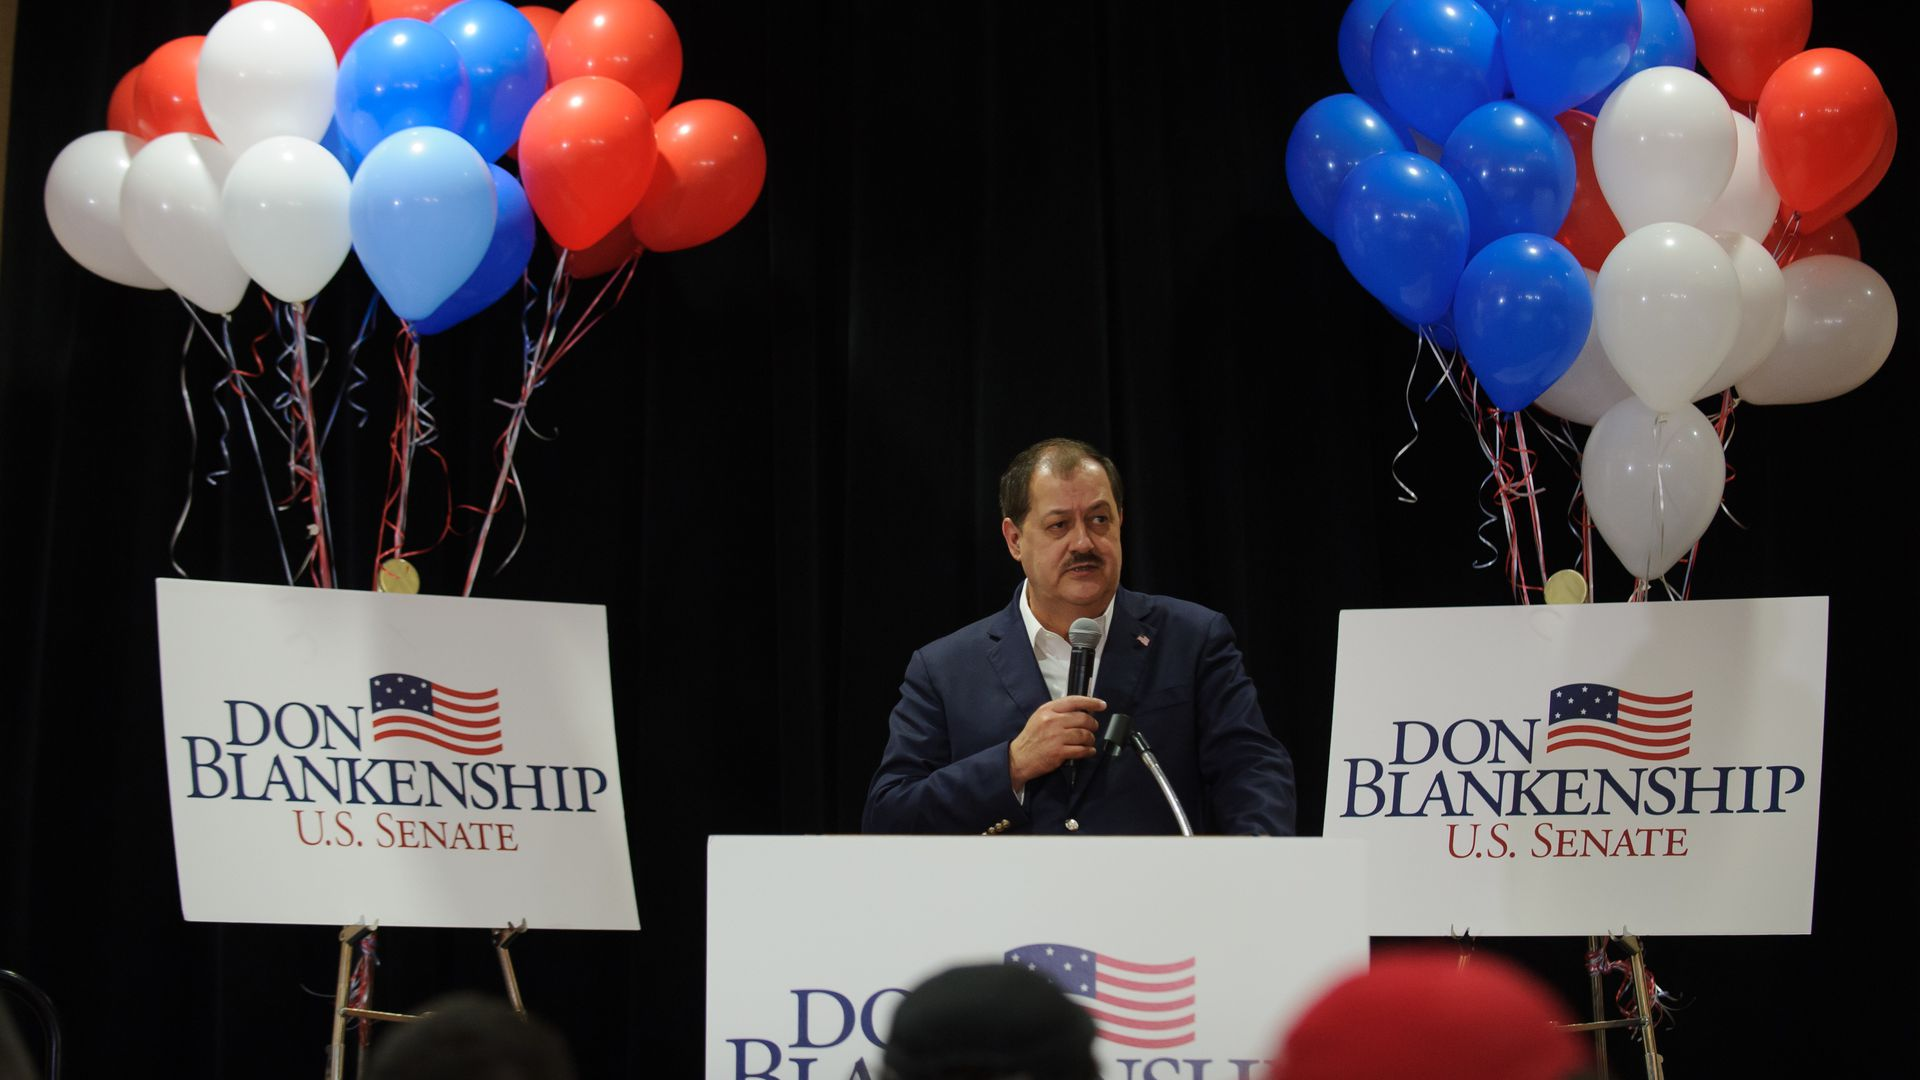 Don Blankenship addressing supporters following his election loss earlier this month.